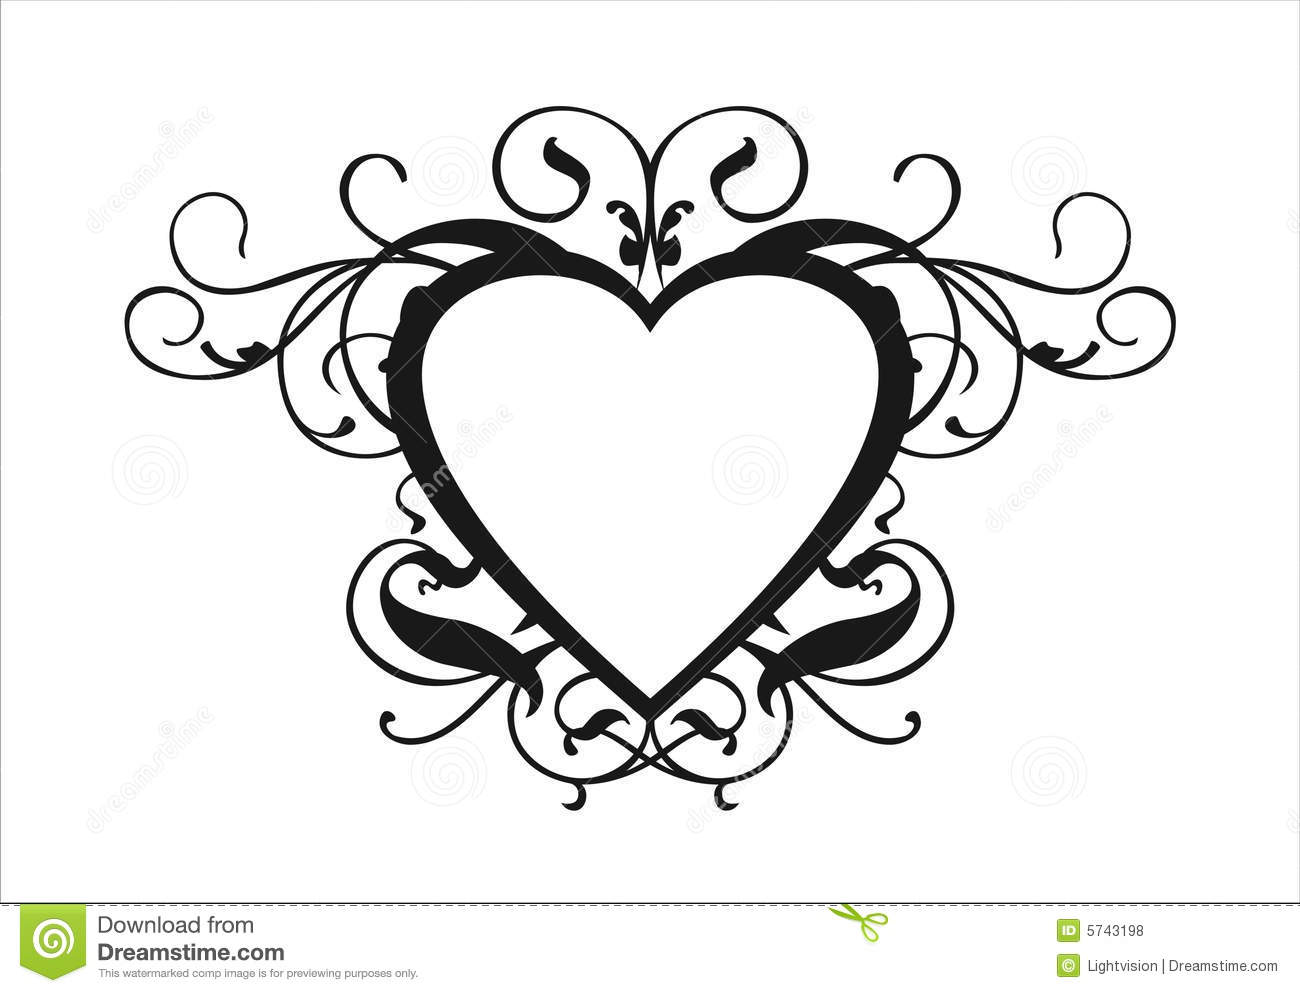 Scroll clipart sannasa Clipart wedding Download October free